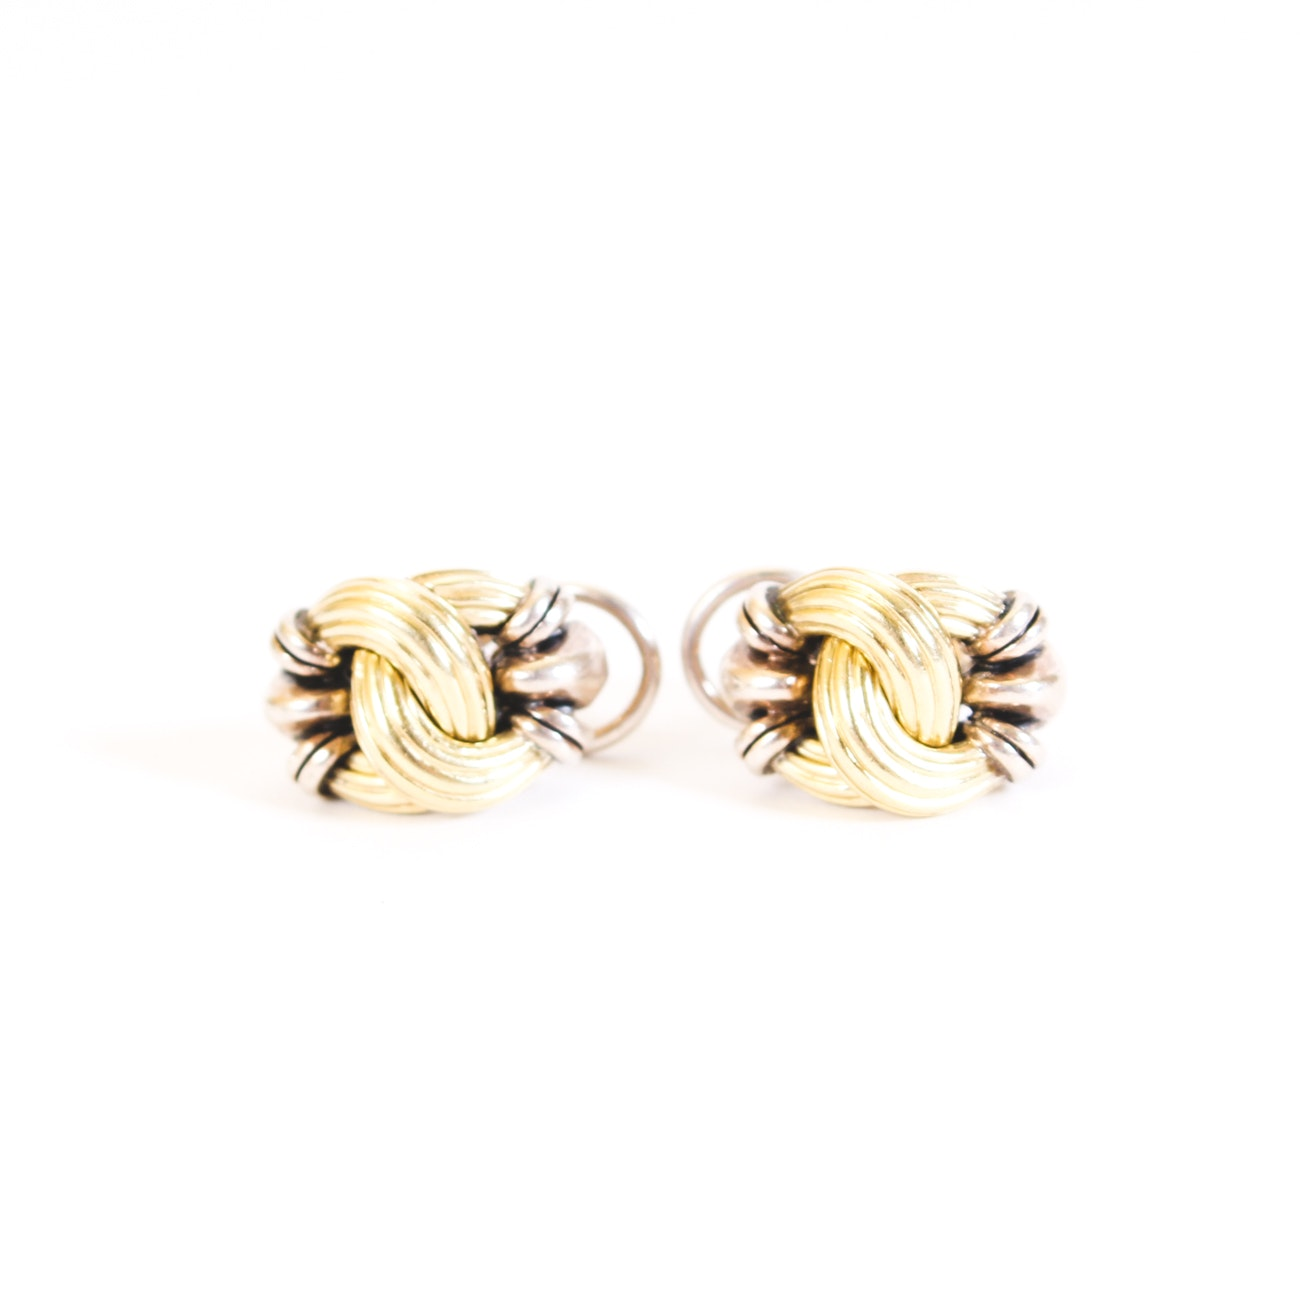 Lagos Caviar Sterling Silver Two-Tone Earrings